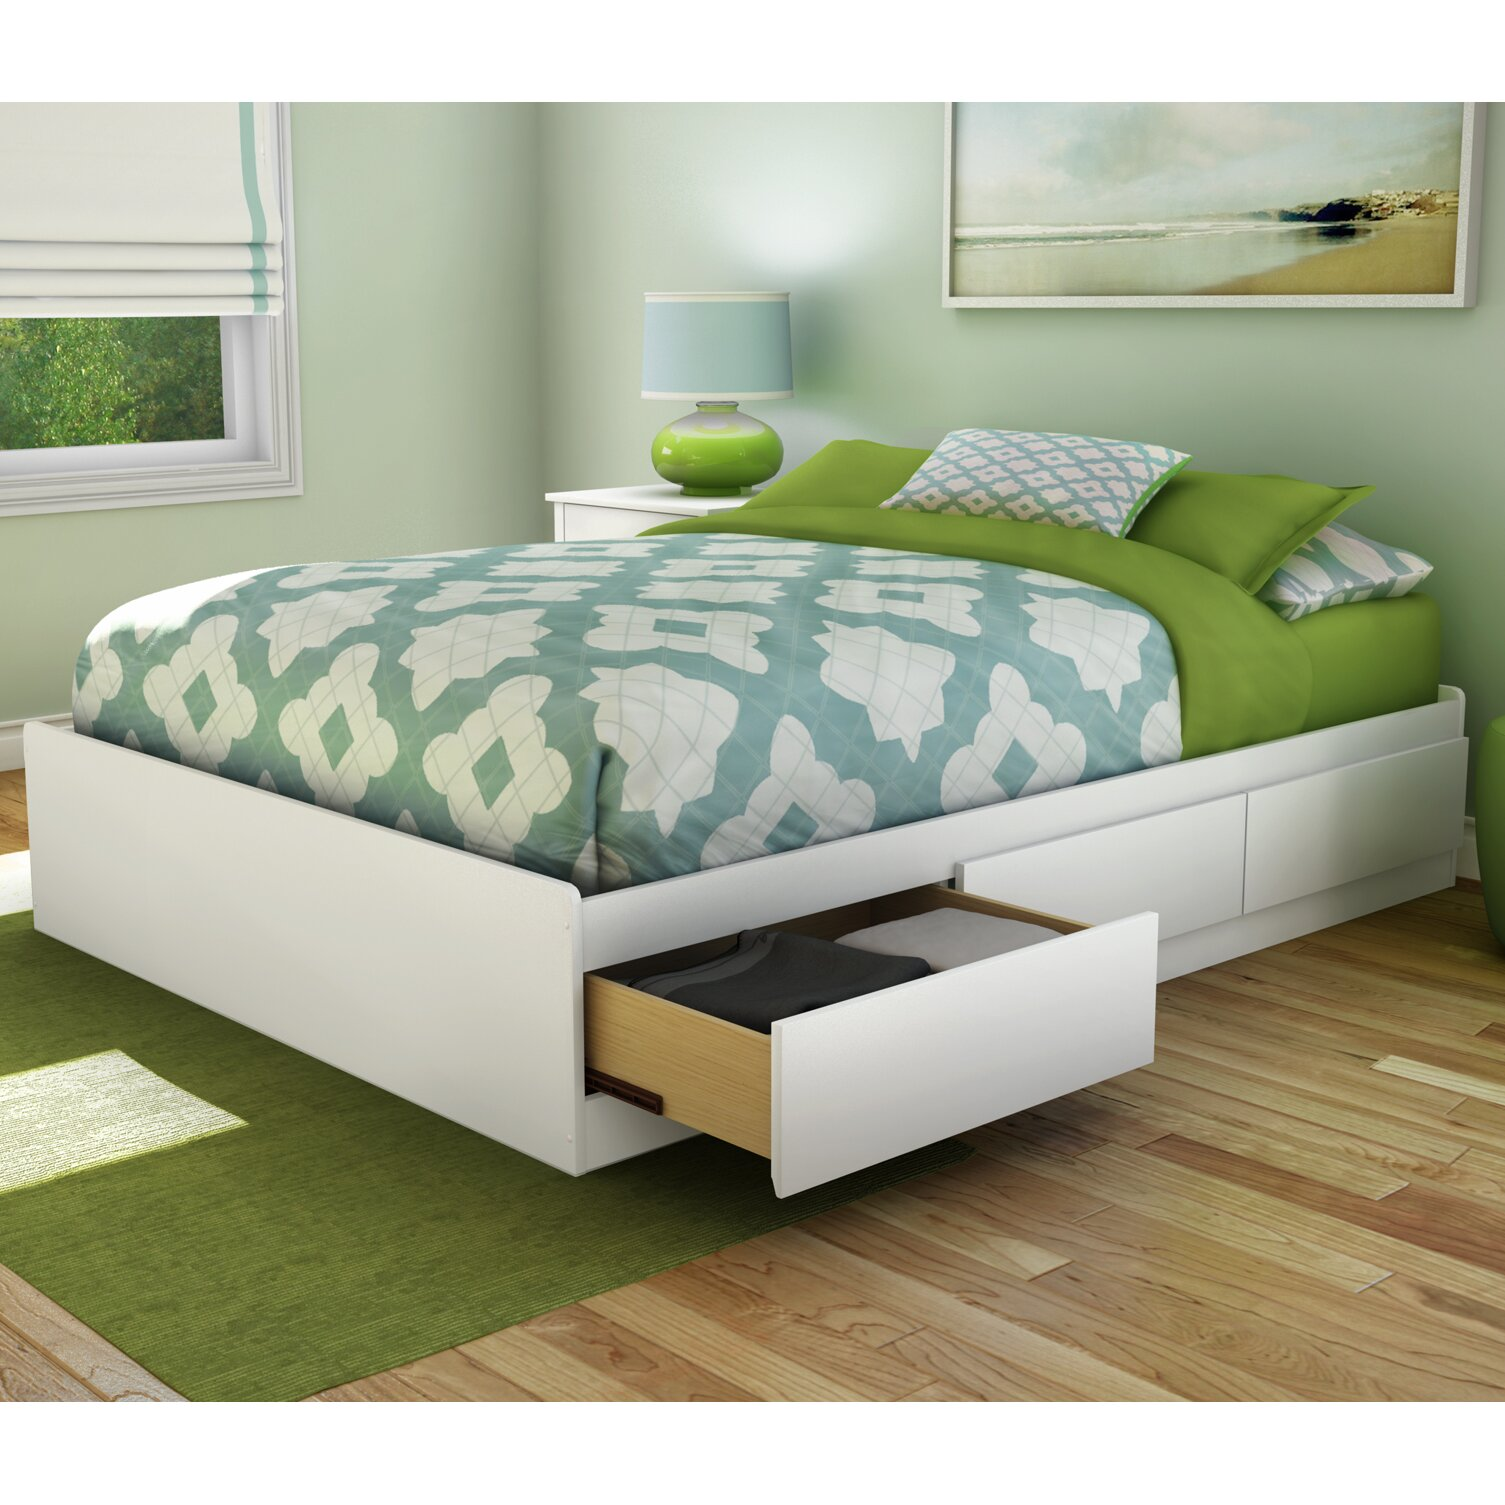 Bed south shore step one full double storage platform bed amp reviews